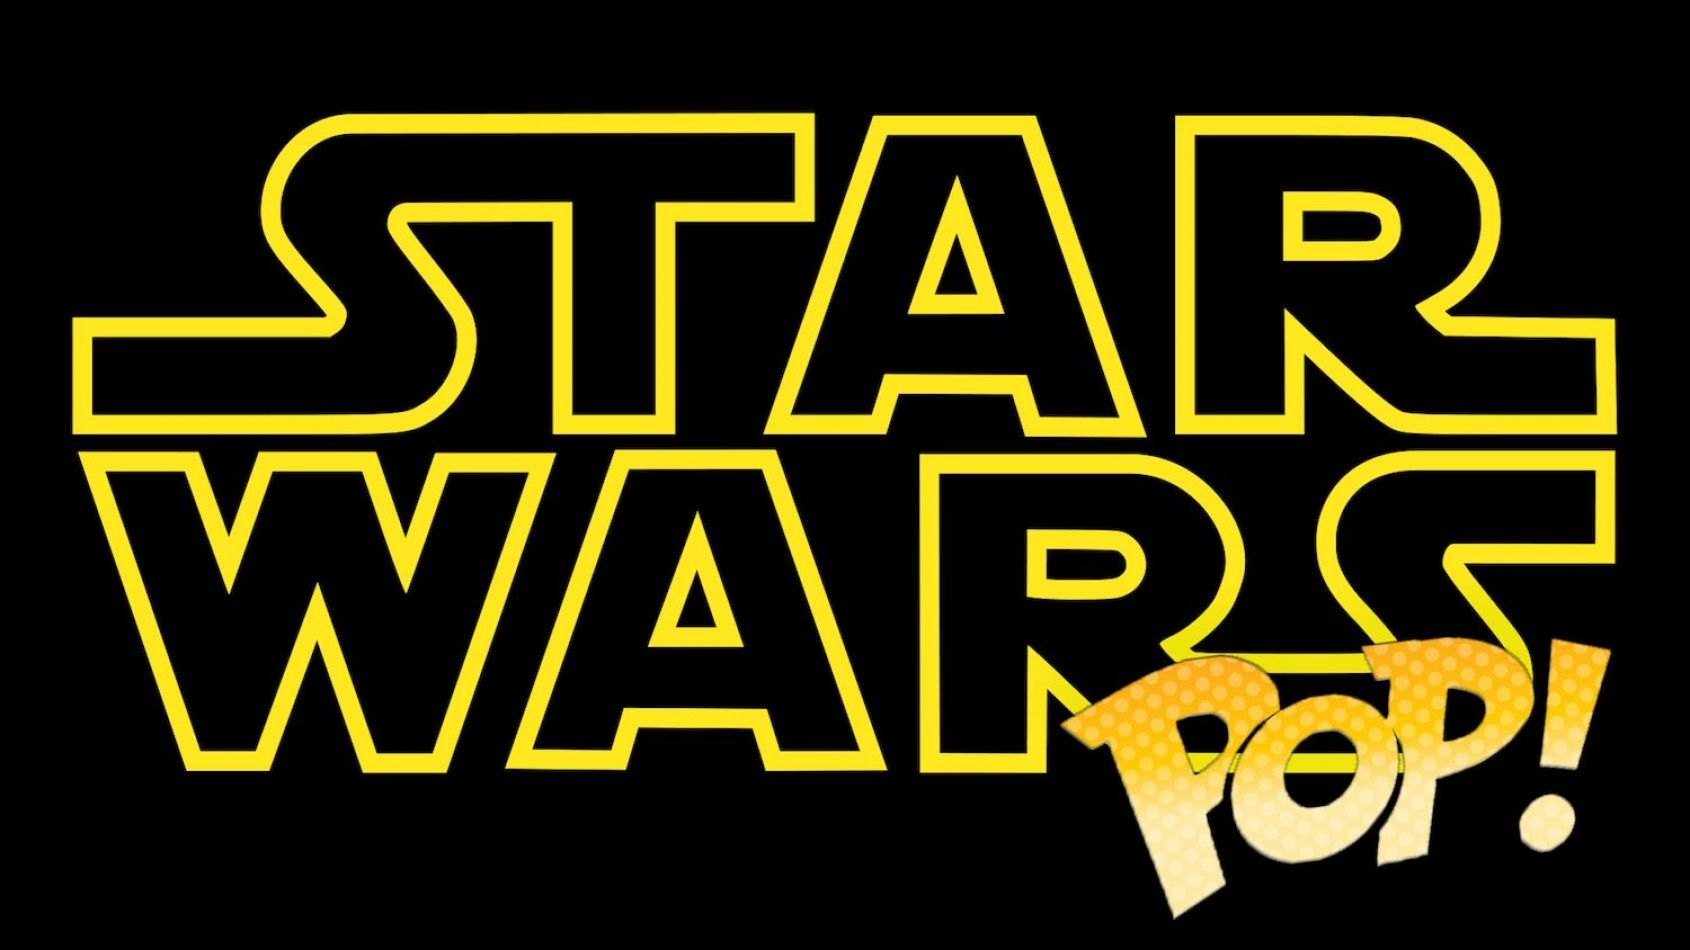 Des Funko Pop Star Wars exclusives pour le Comic Con de San Diego